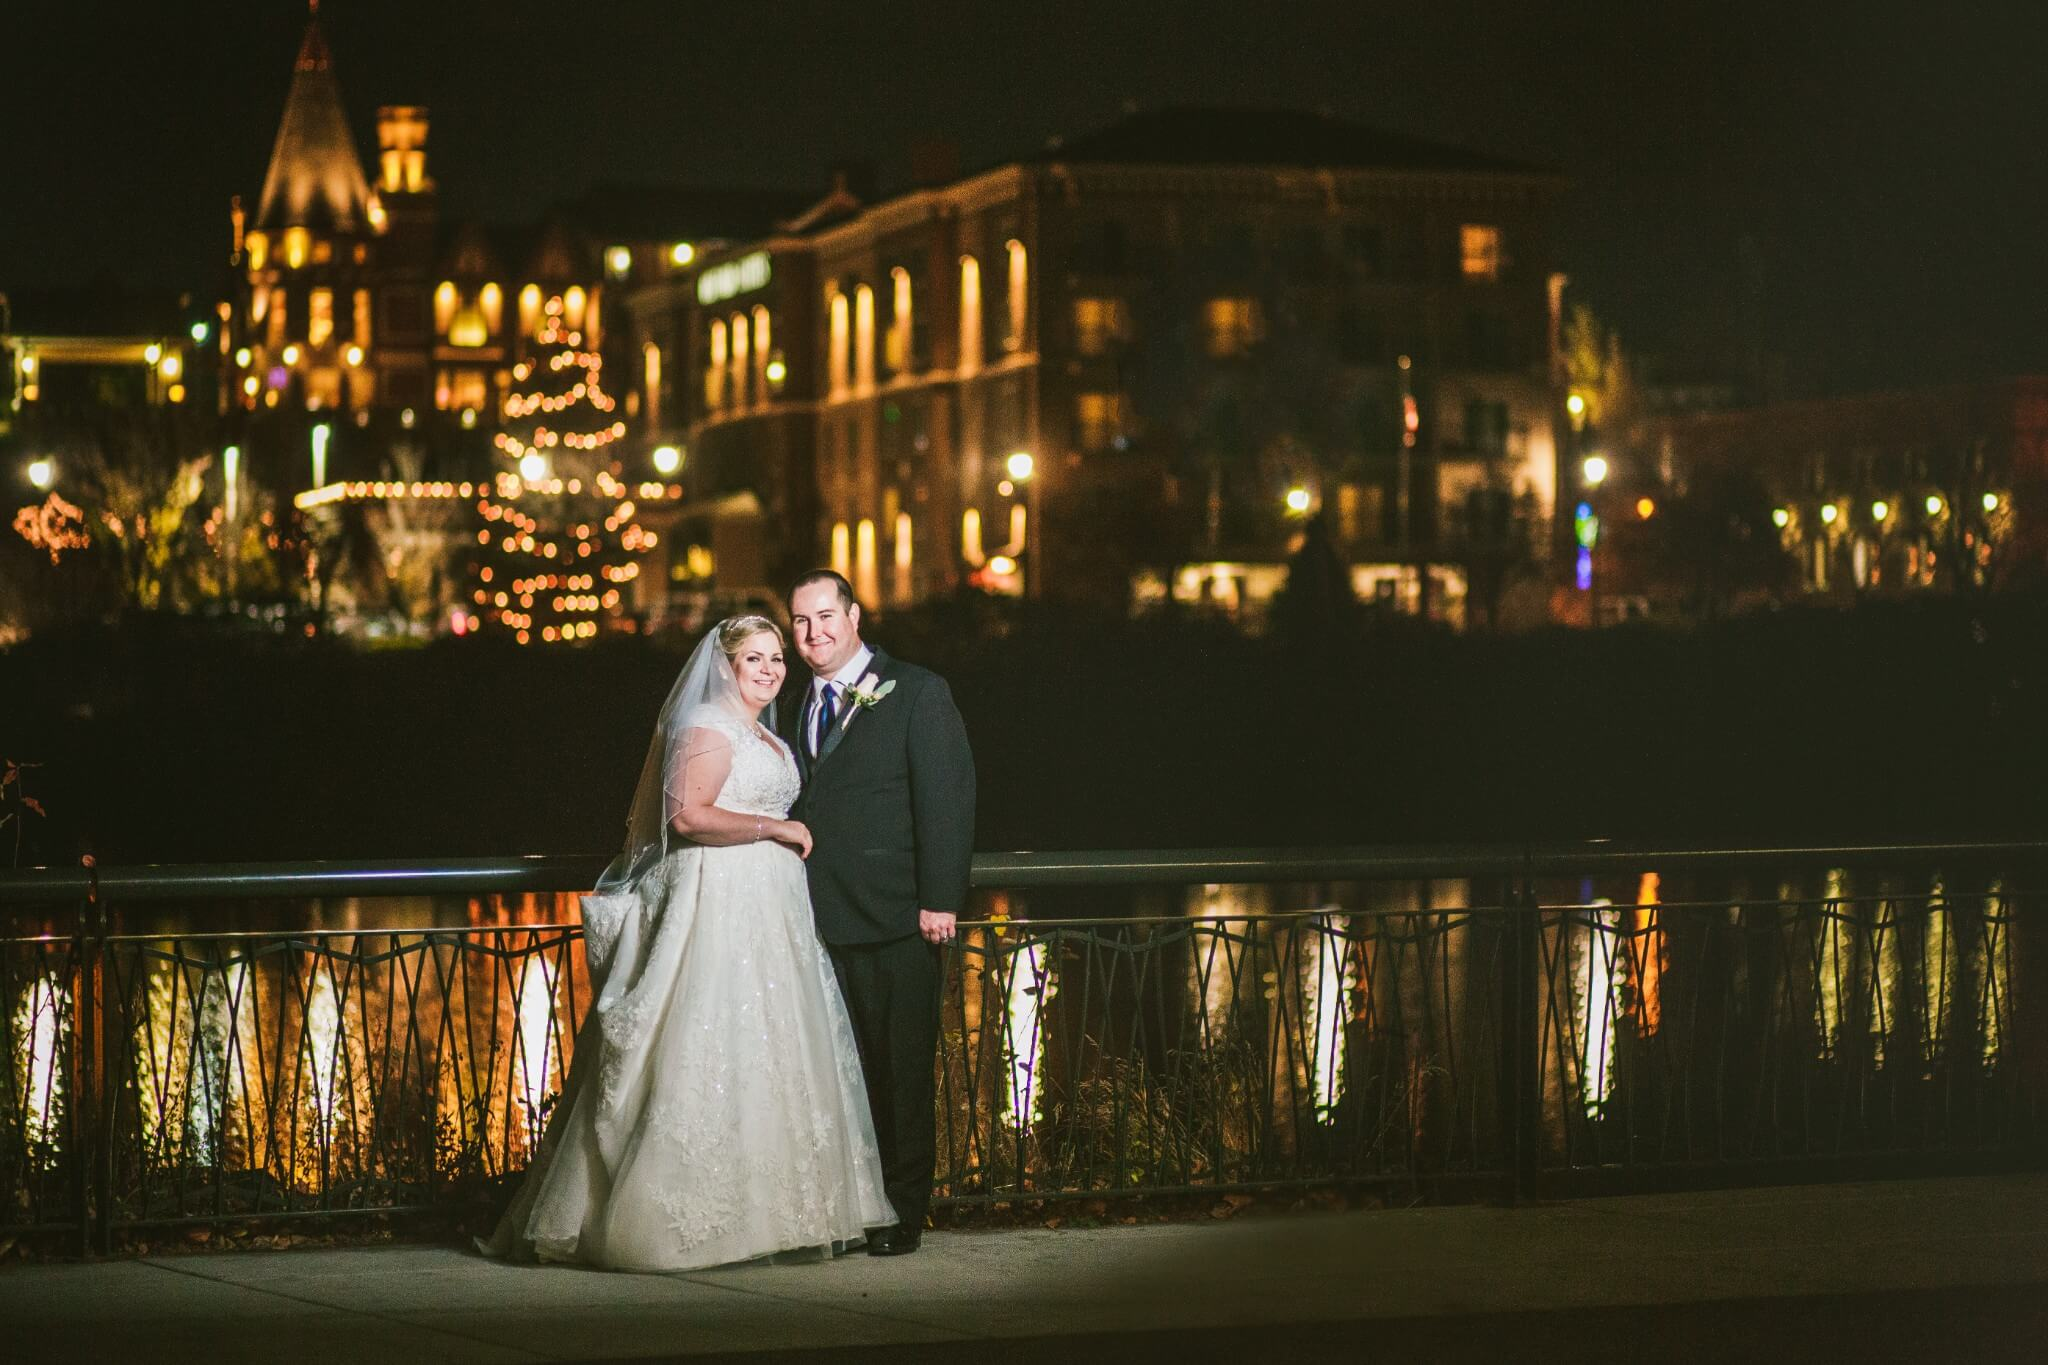 Spokane and Coeur d'Alene Wedding by Bill Weisgerber Photography 3.jpg